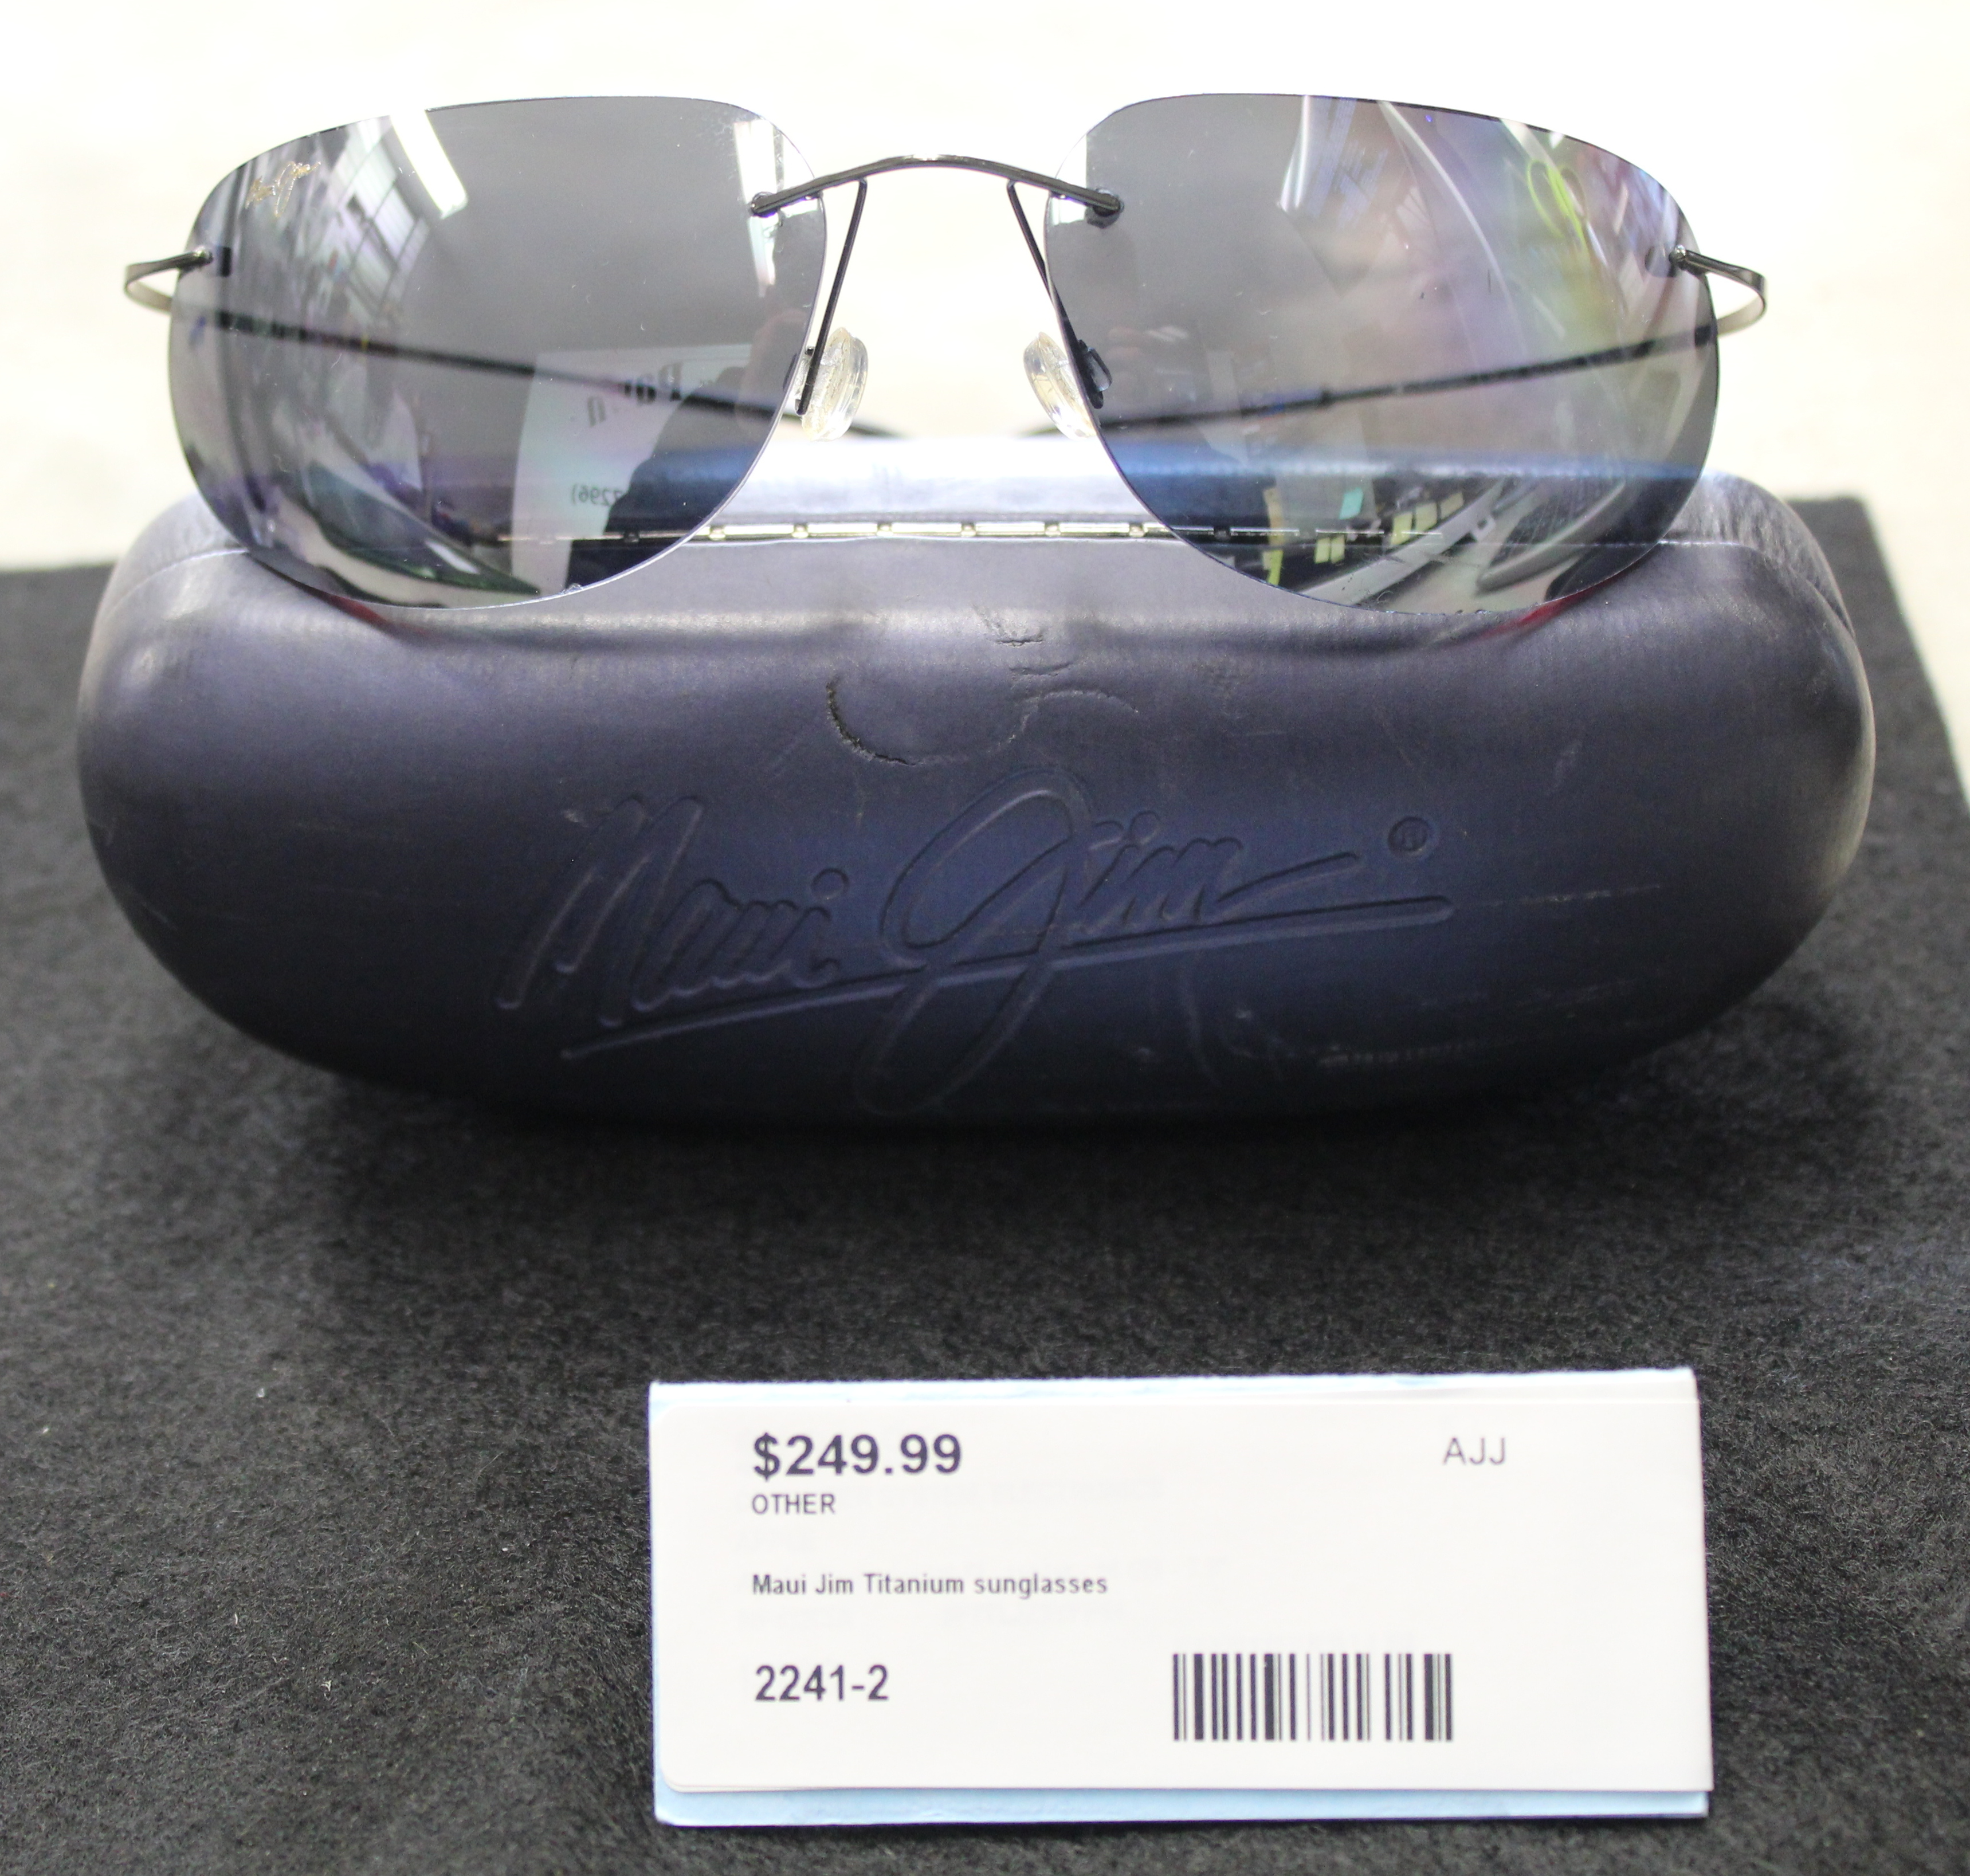 Maui Jim Titanium Sunglasses